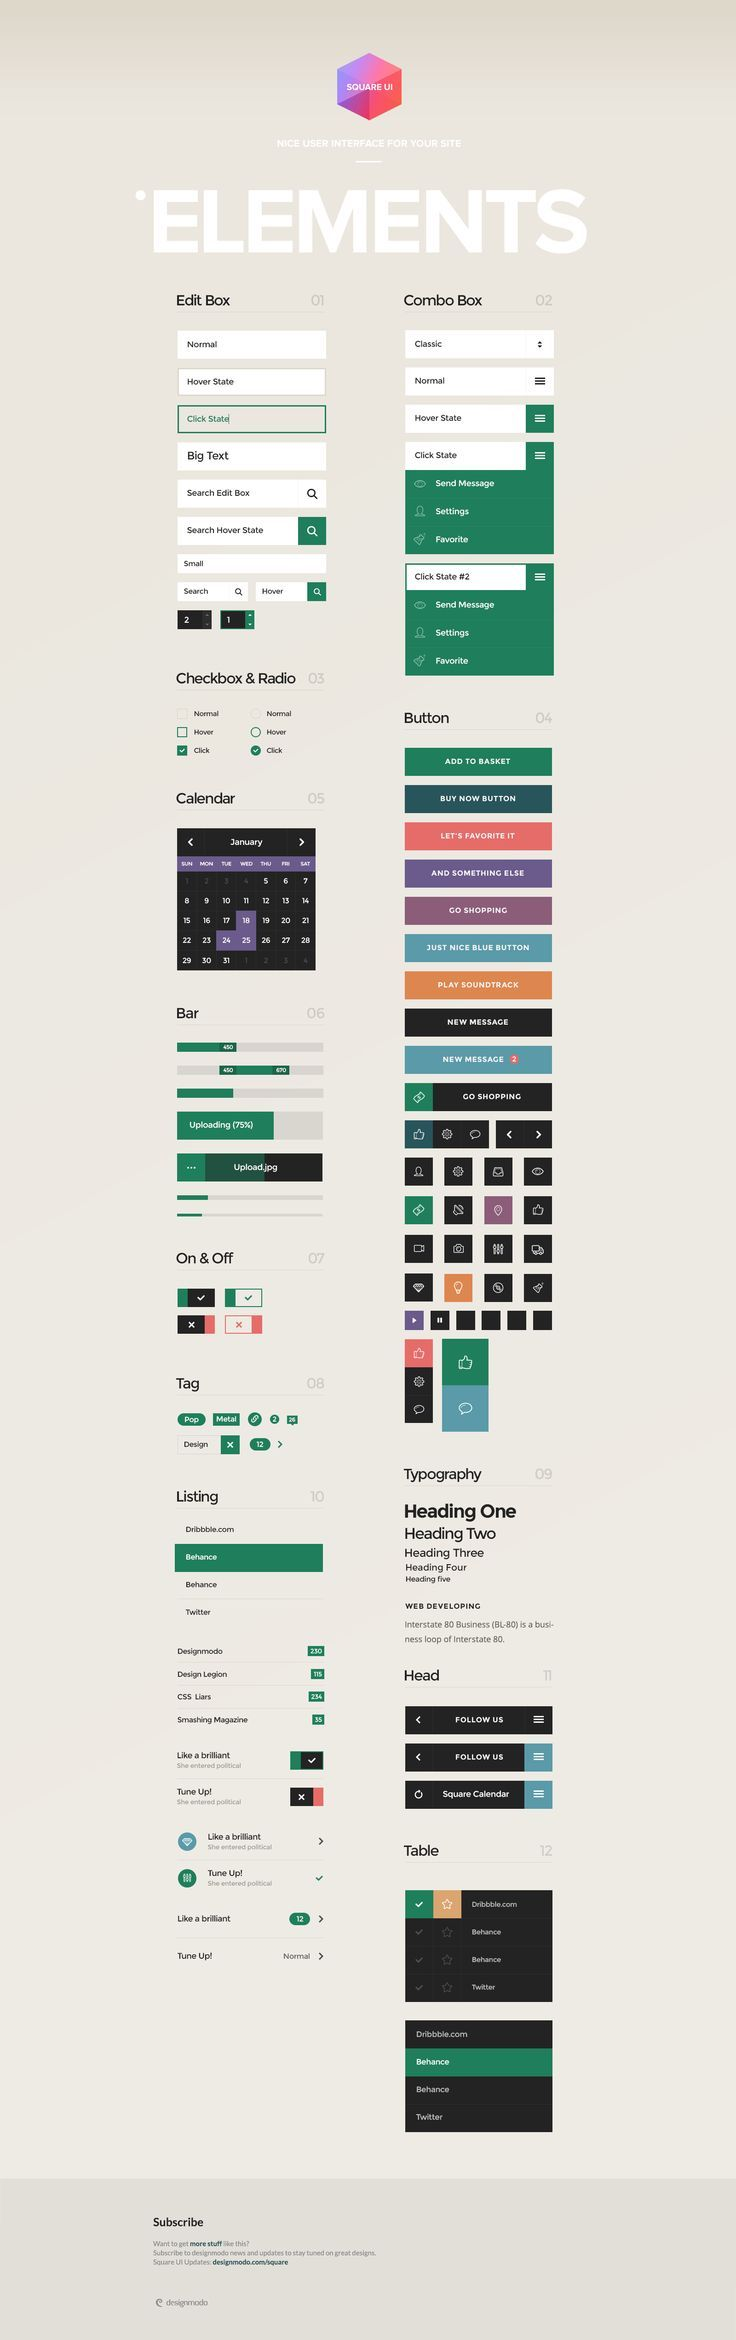 Square UI User Interface Kit For more Components, Typography -> http://designmodo.com/square/